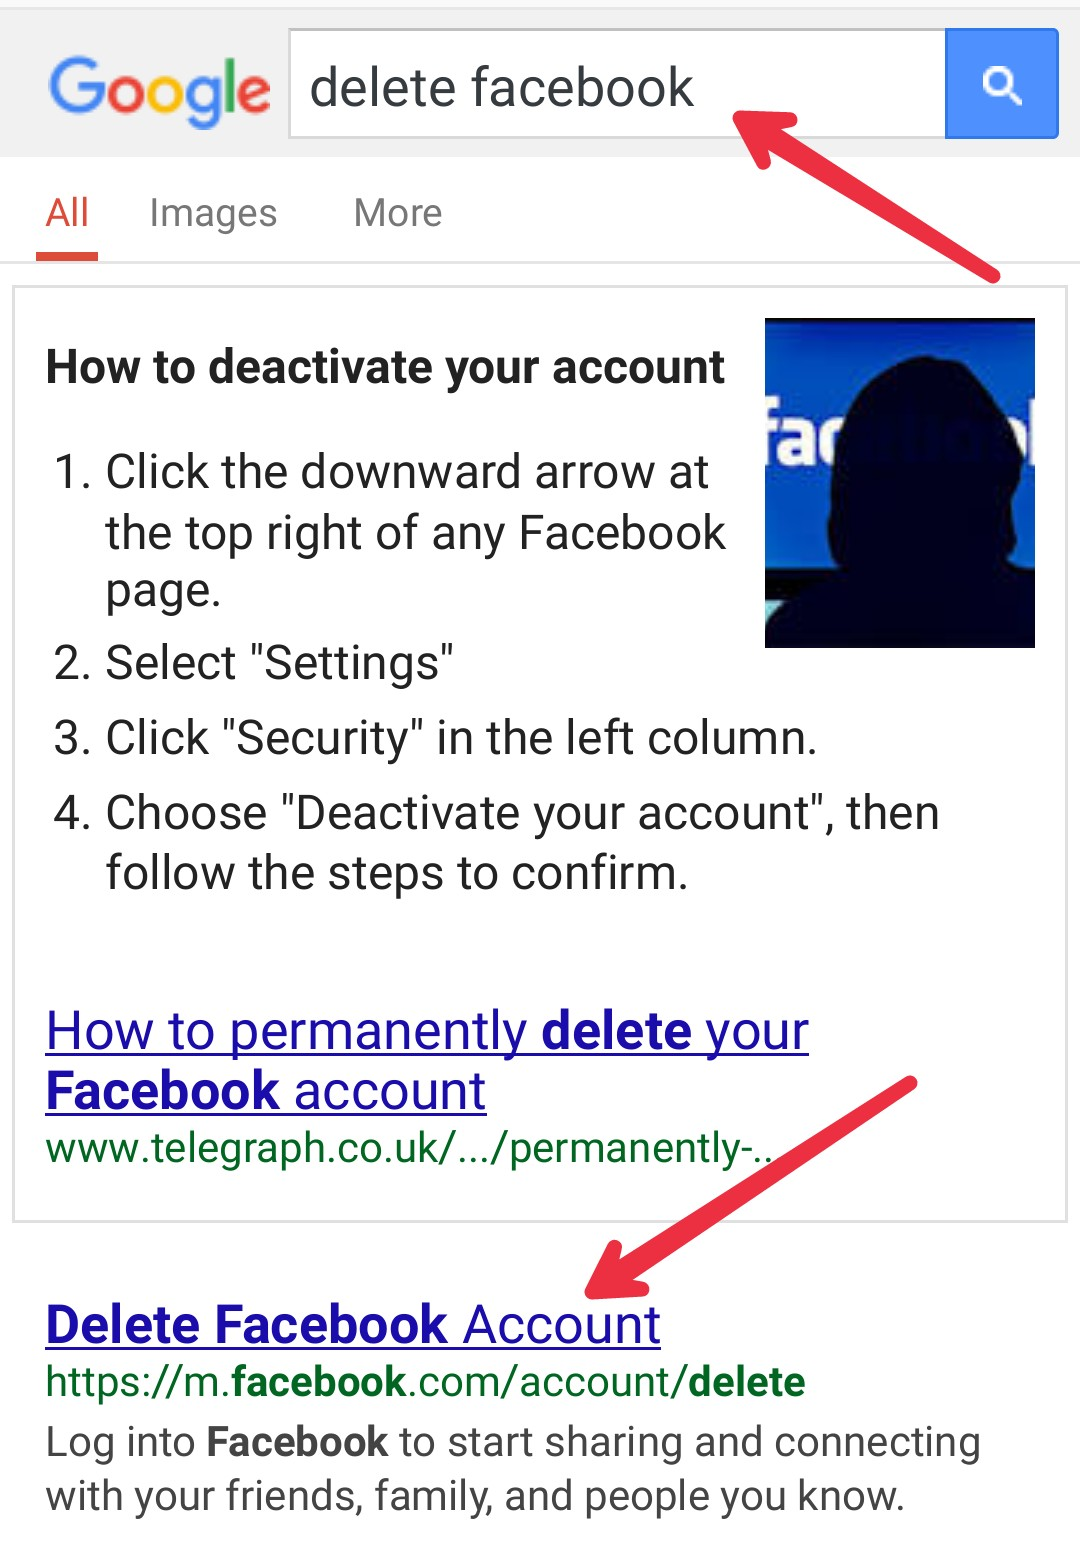 How to delete facebook account from mobile biswajit2 surch hone ke bath niche bahut reselt so hoga usme apko delete facebook account ka ek article melega usko open kare ccuart Gallery